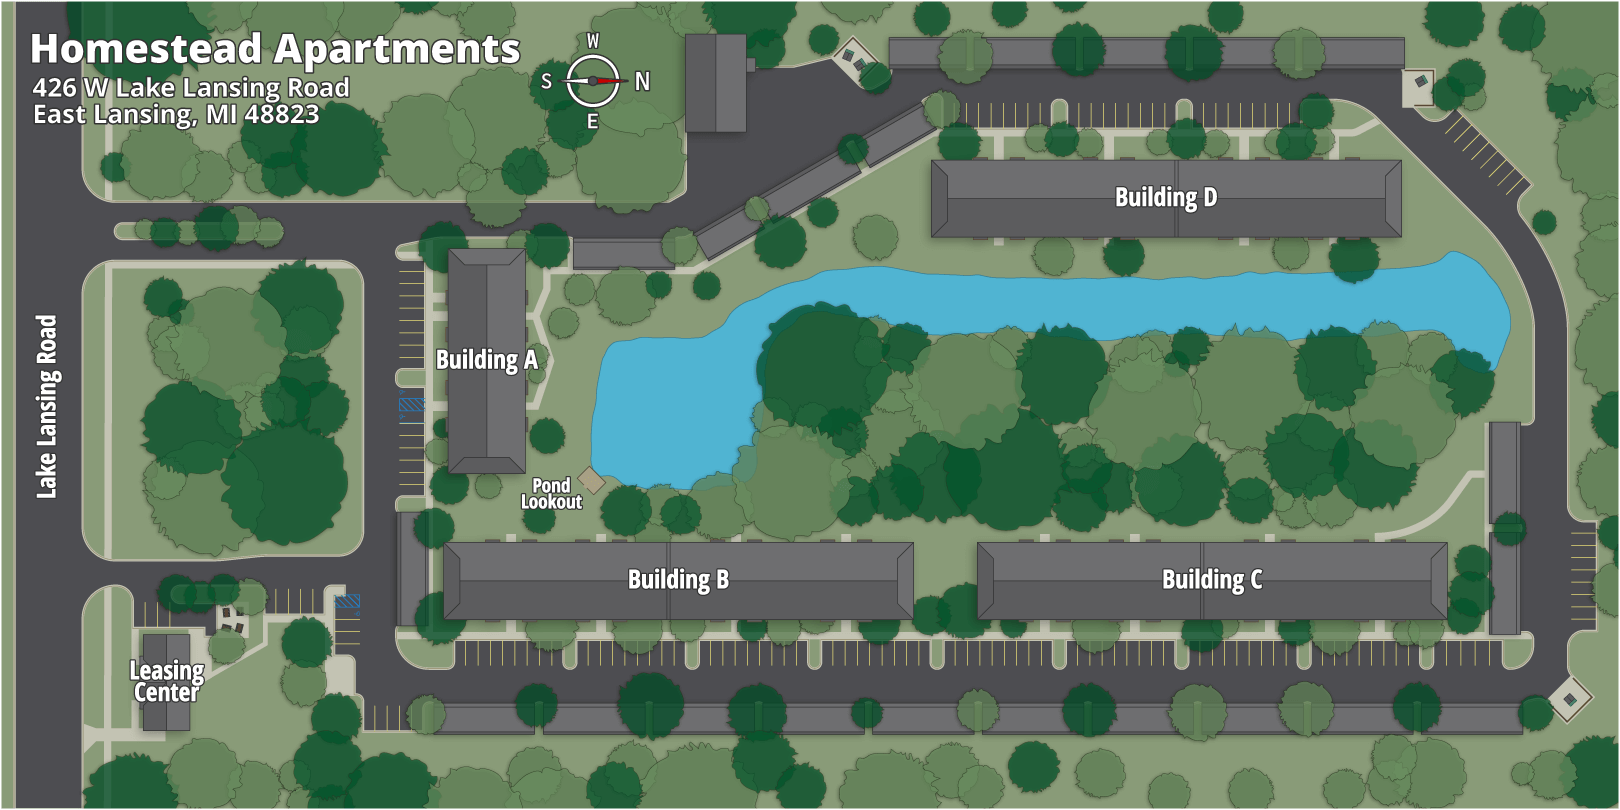 Homestead Apartments Map